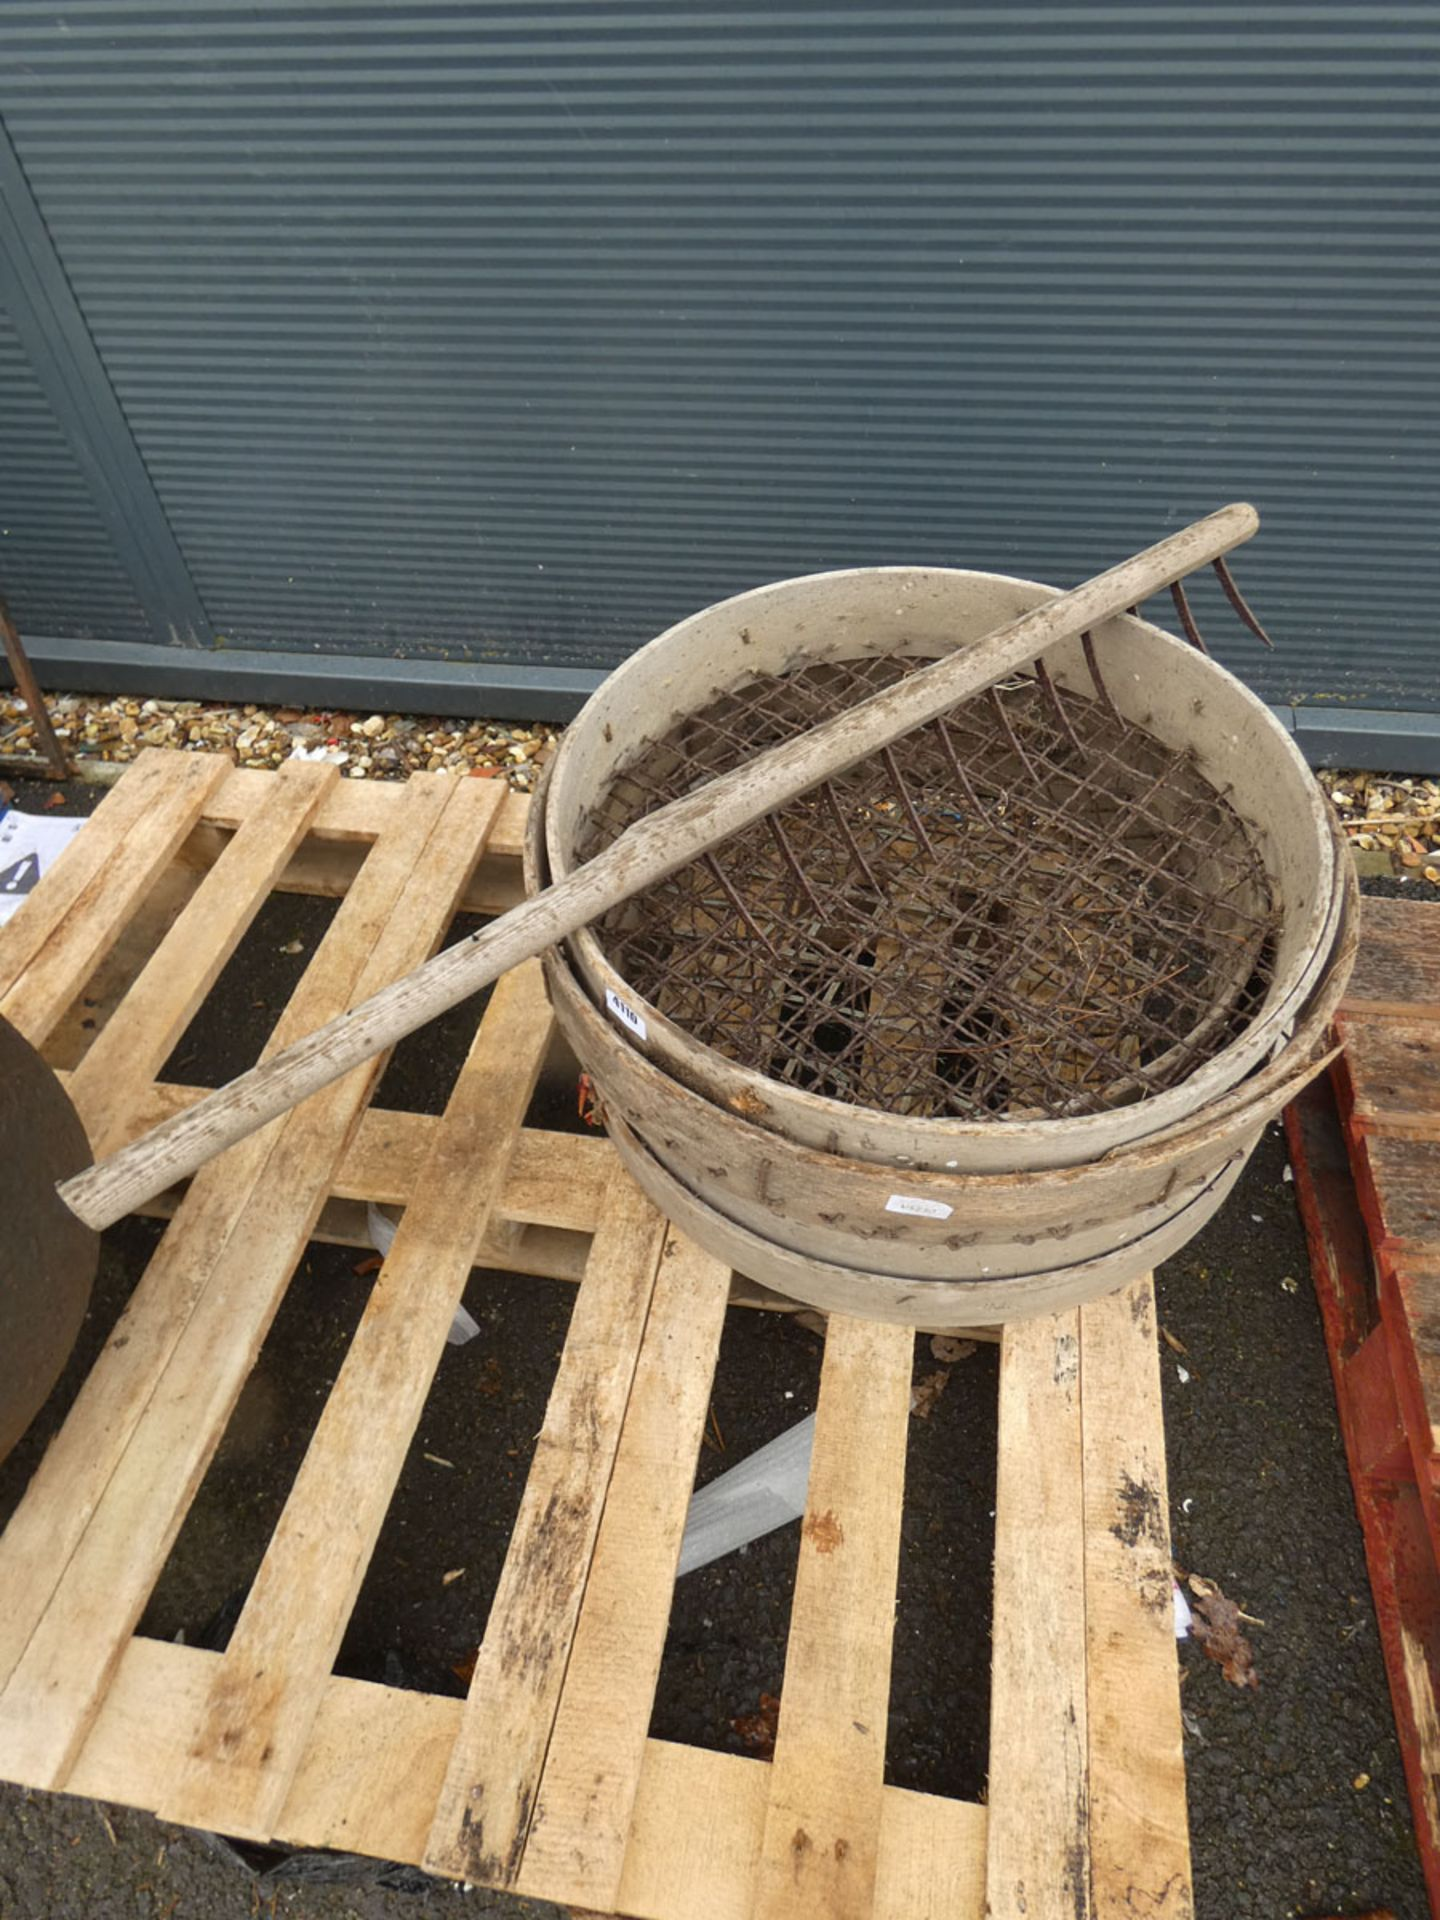 Large vintage sieves and a vintage scraper